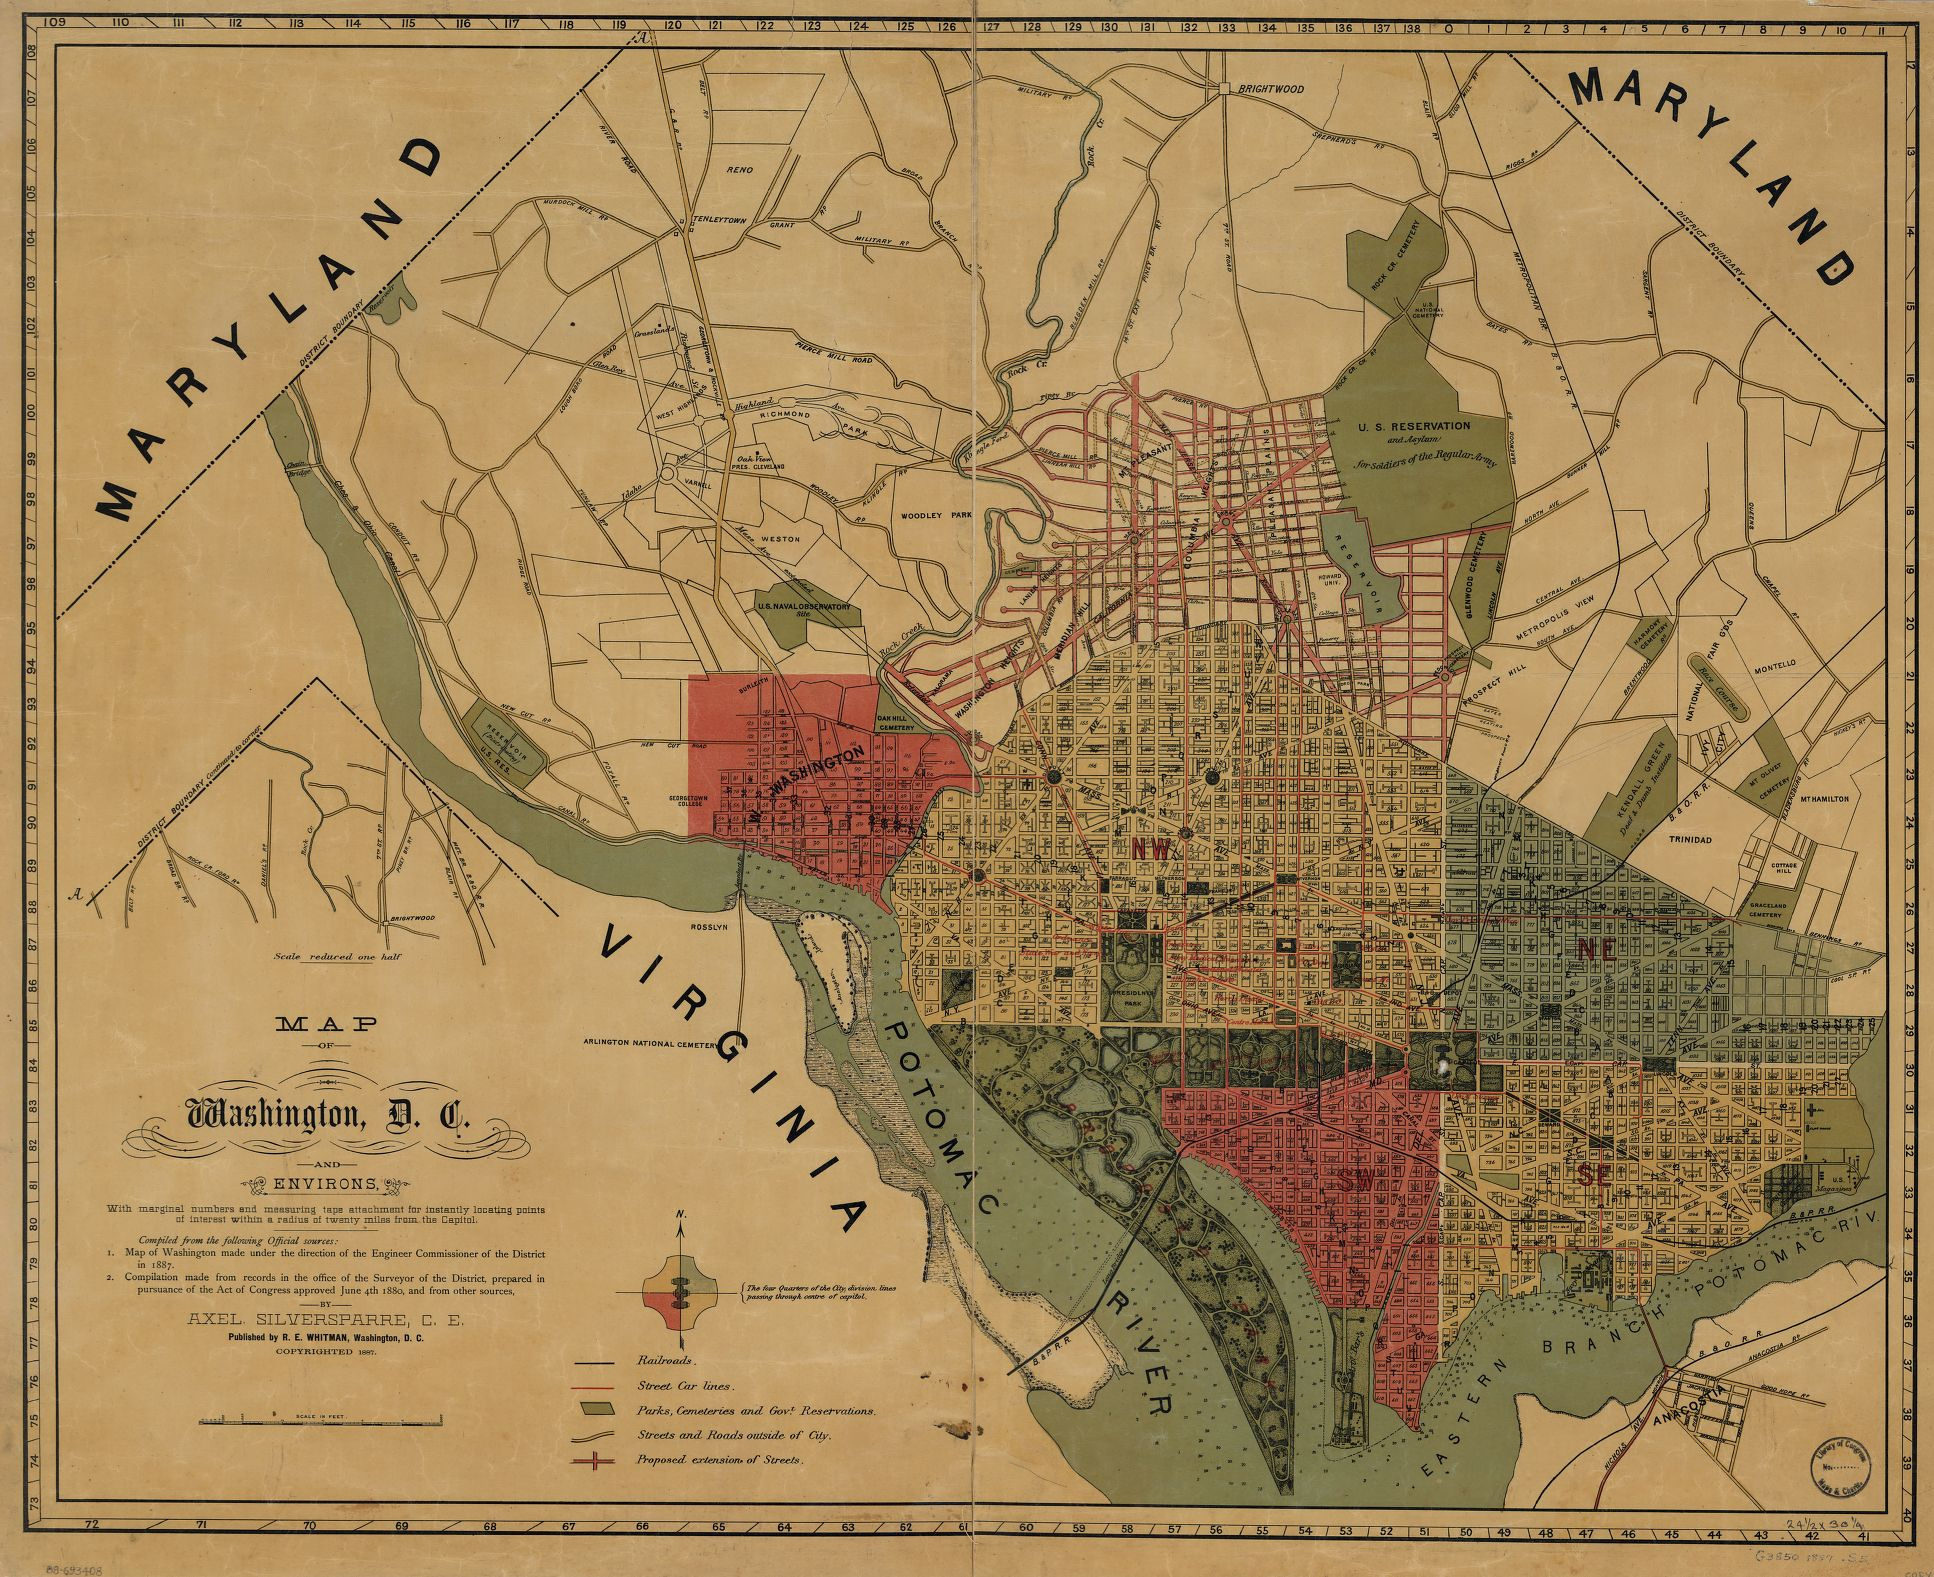 Petworth Dc Map.Popville Map Of The Week Vol 6 Washington D C And Environs 1887